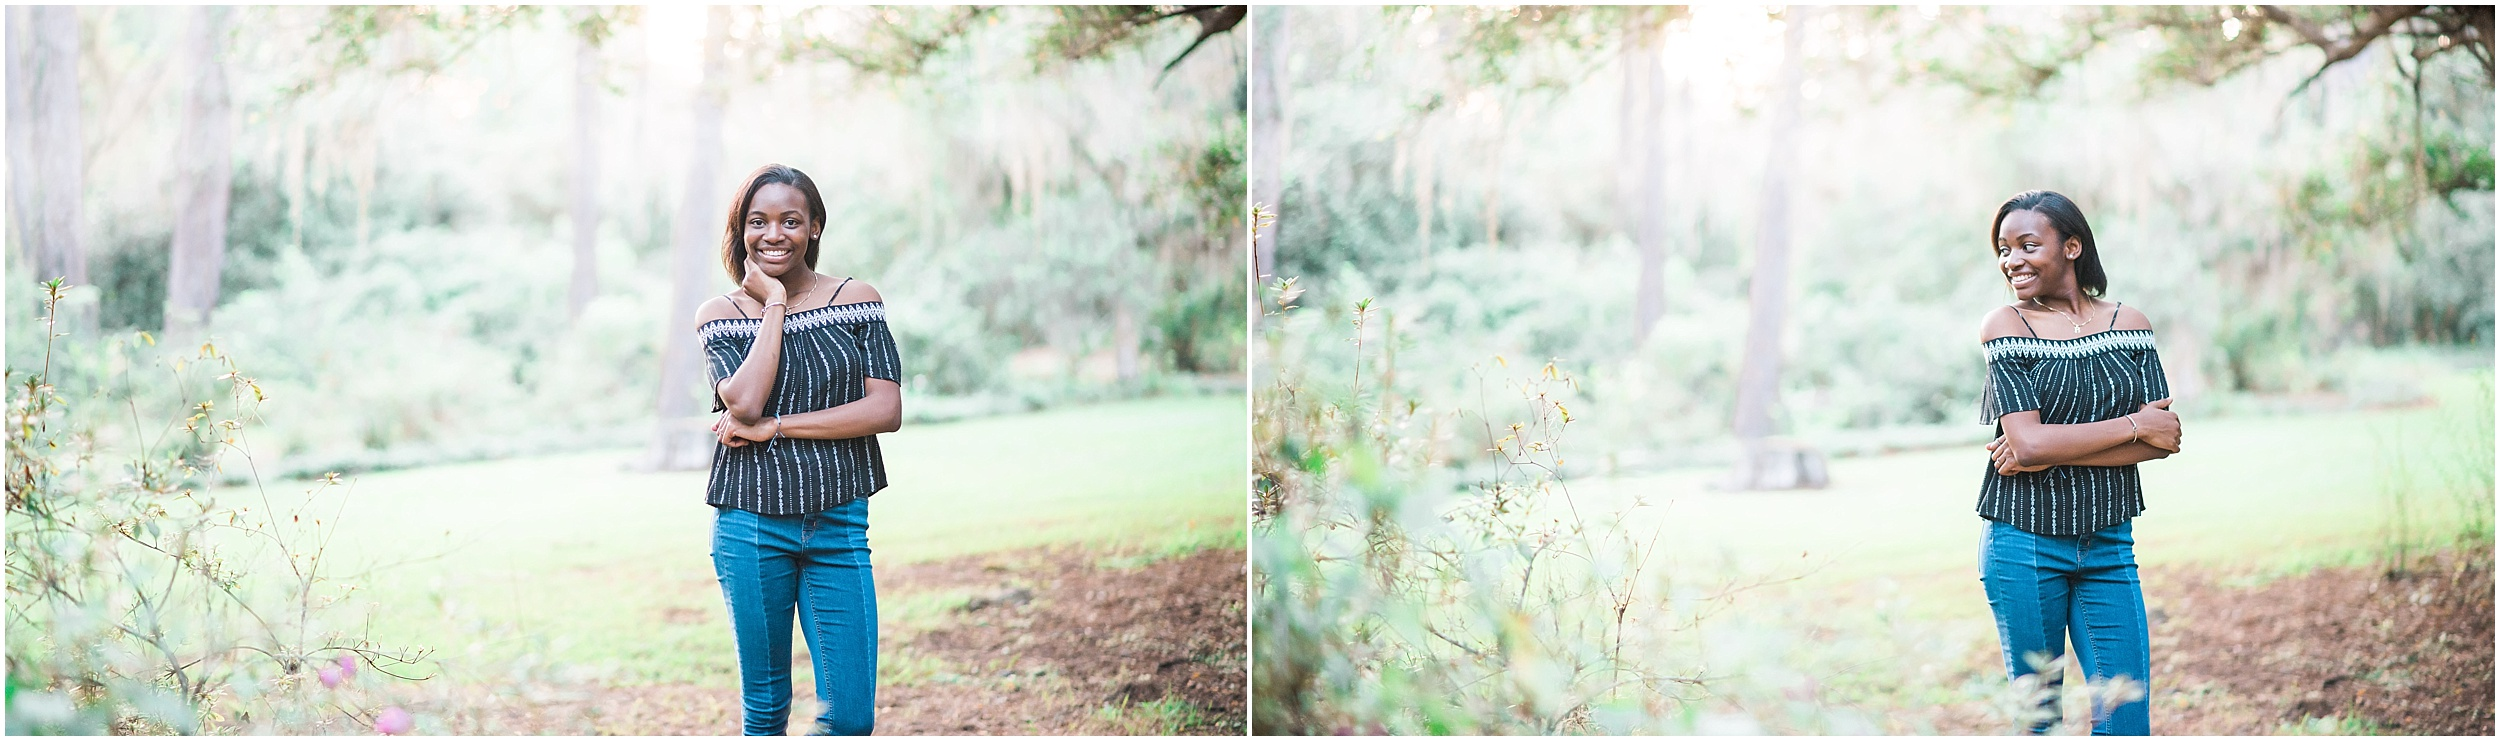 Tallahassee Florida Wedding & Senior Photographer, Brianna Senior Session at Maclay Gardens, Tallahassee Florida_0016.jpg